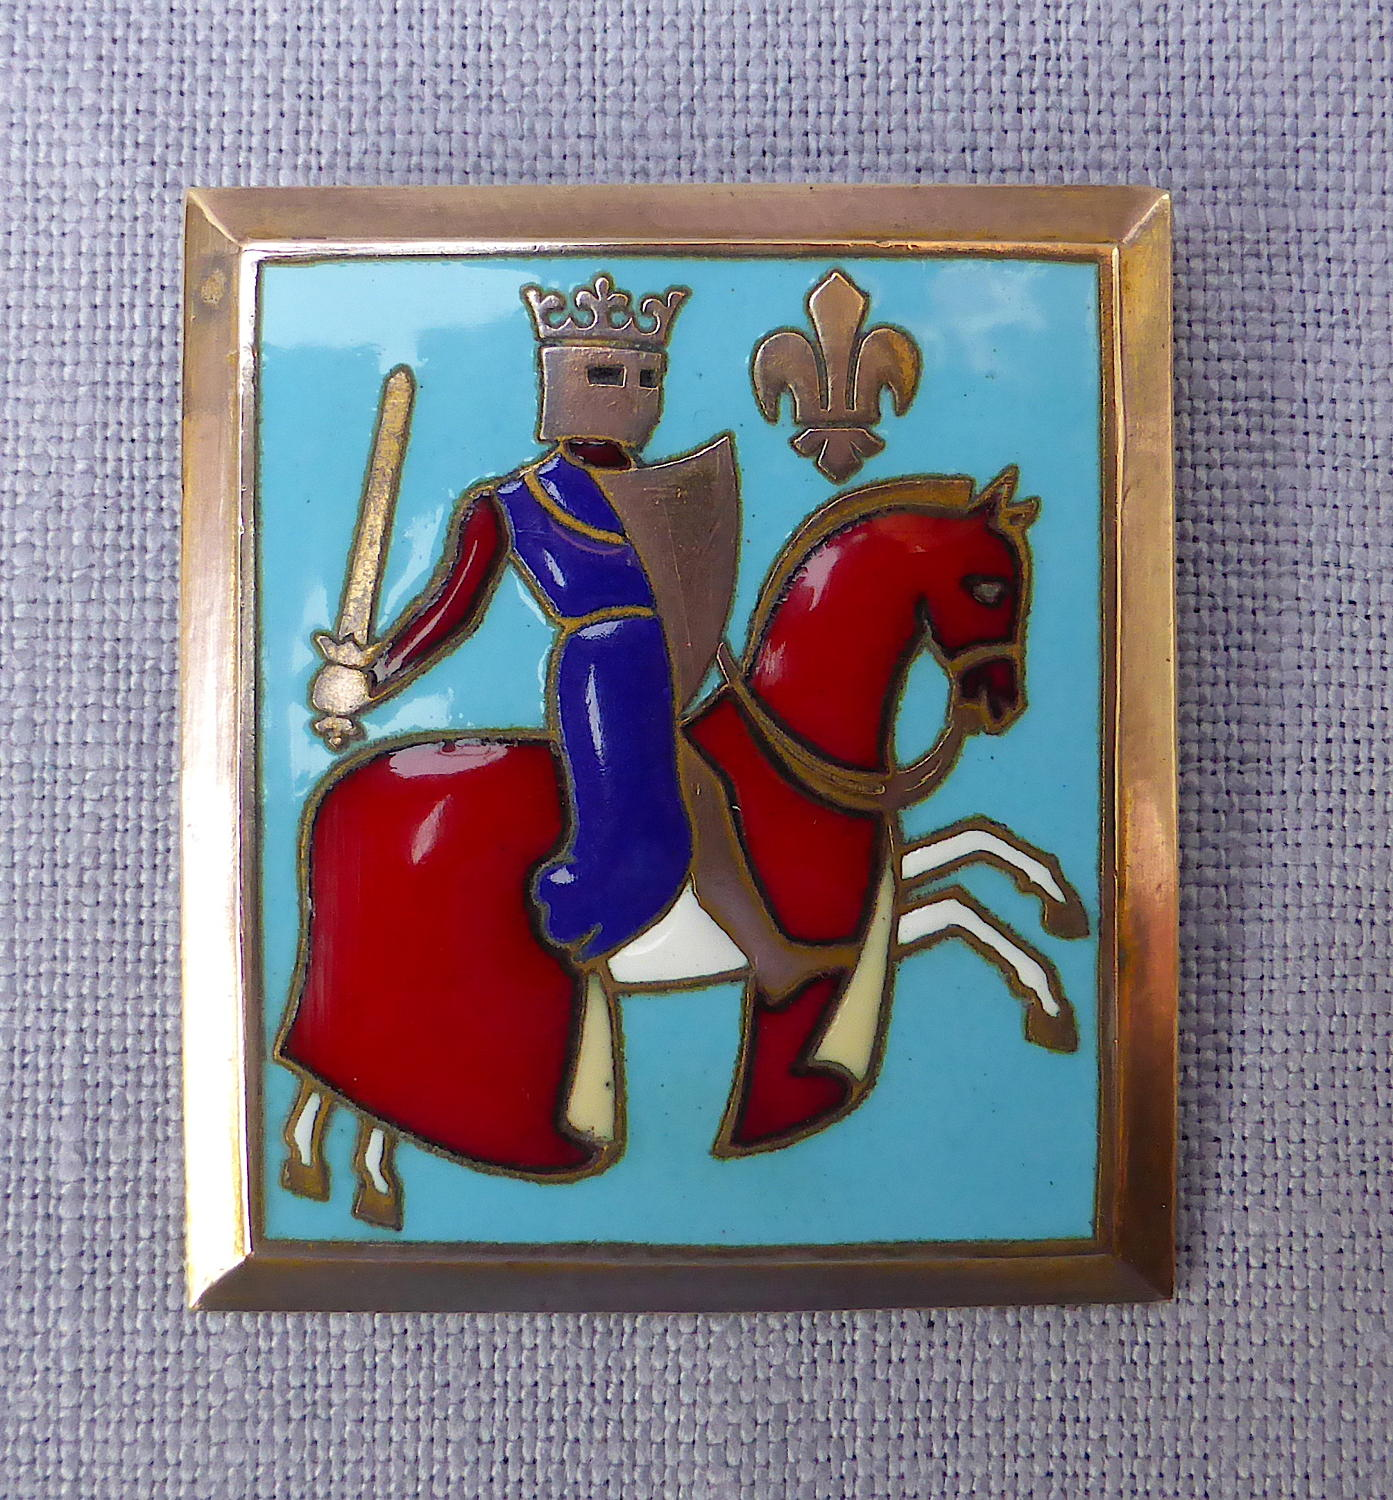 Enamelled French knight on horseback brooch by F Bouillot